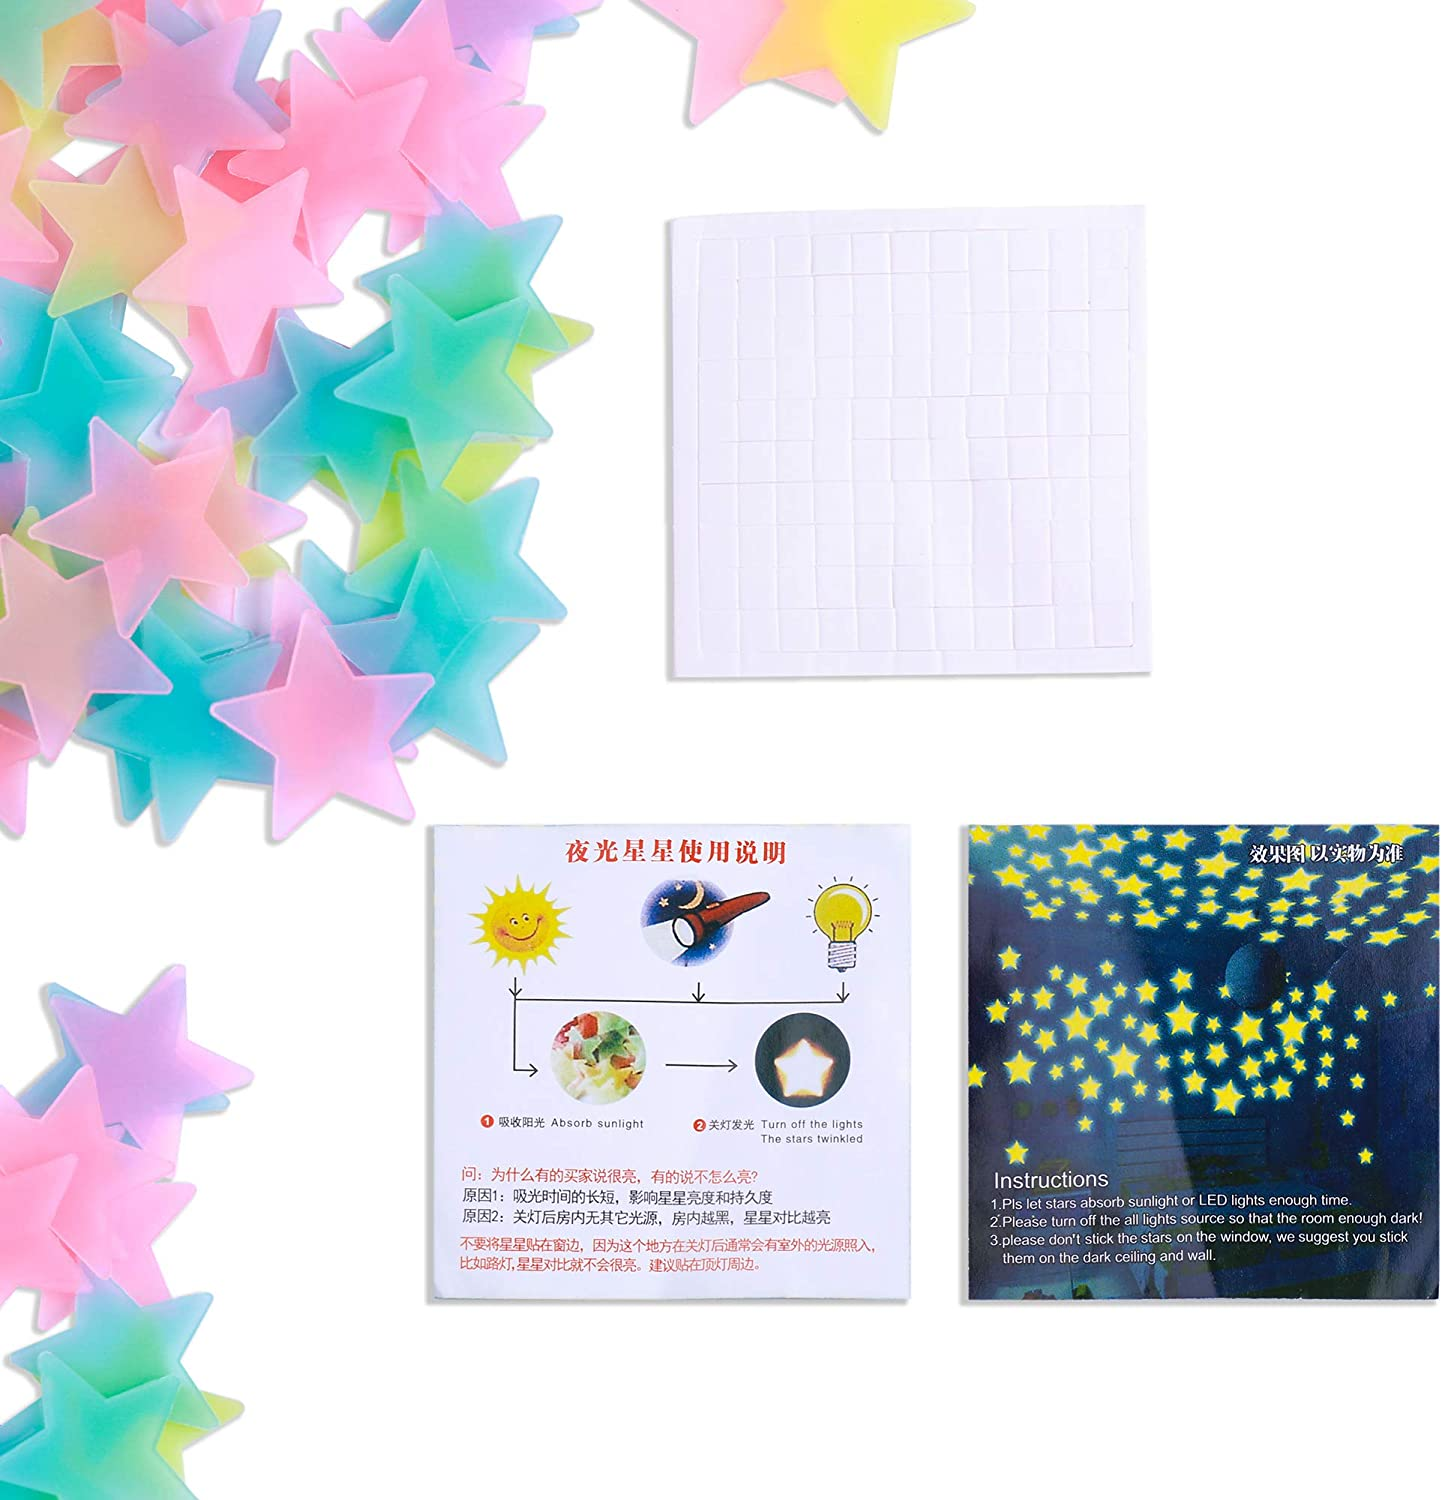 Amaonm 100 Pcs Colorful Glow in The Dark Luminous Stars Fluorescent Noctilucent Plastic Wall Stickers Murals Decals for Home Art Decor Ceiling Wall Decorate Kids Babys Bedroom Room Decorations: Home & Kitchen